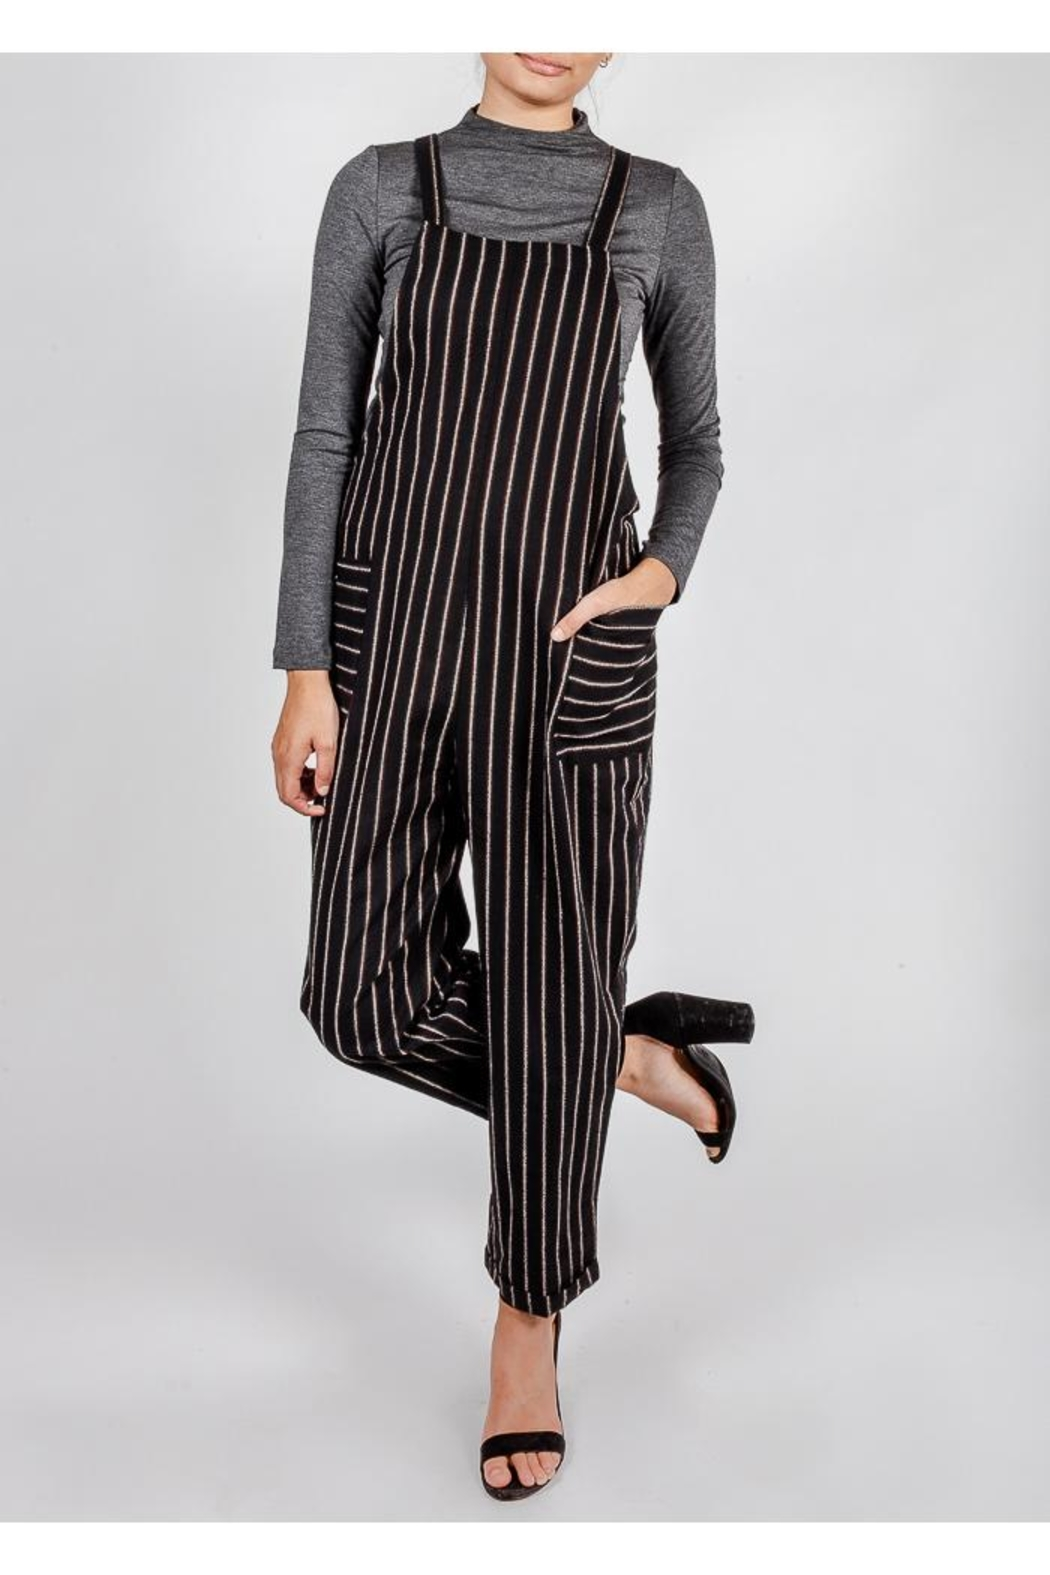 All In Favor Black Striped Slouchy-Overalls - Main Image